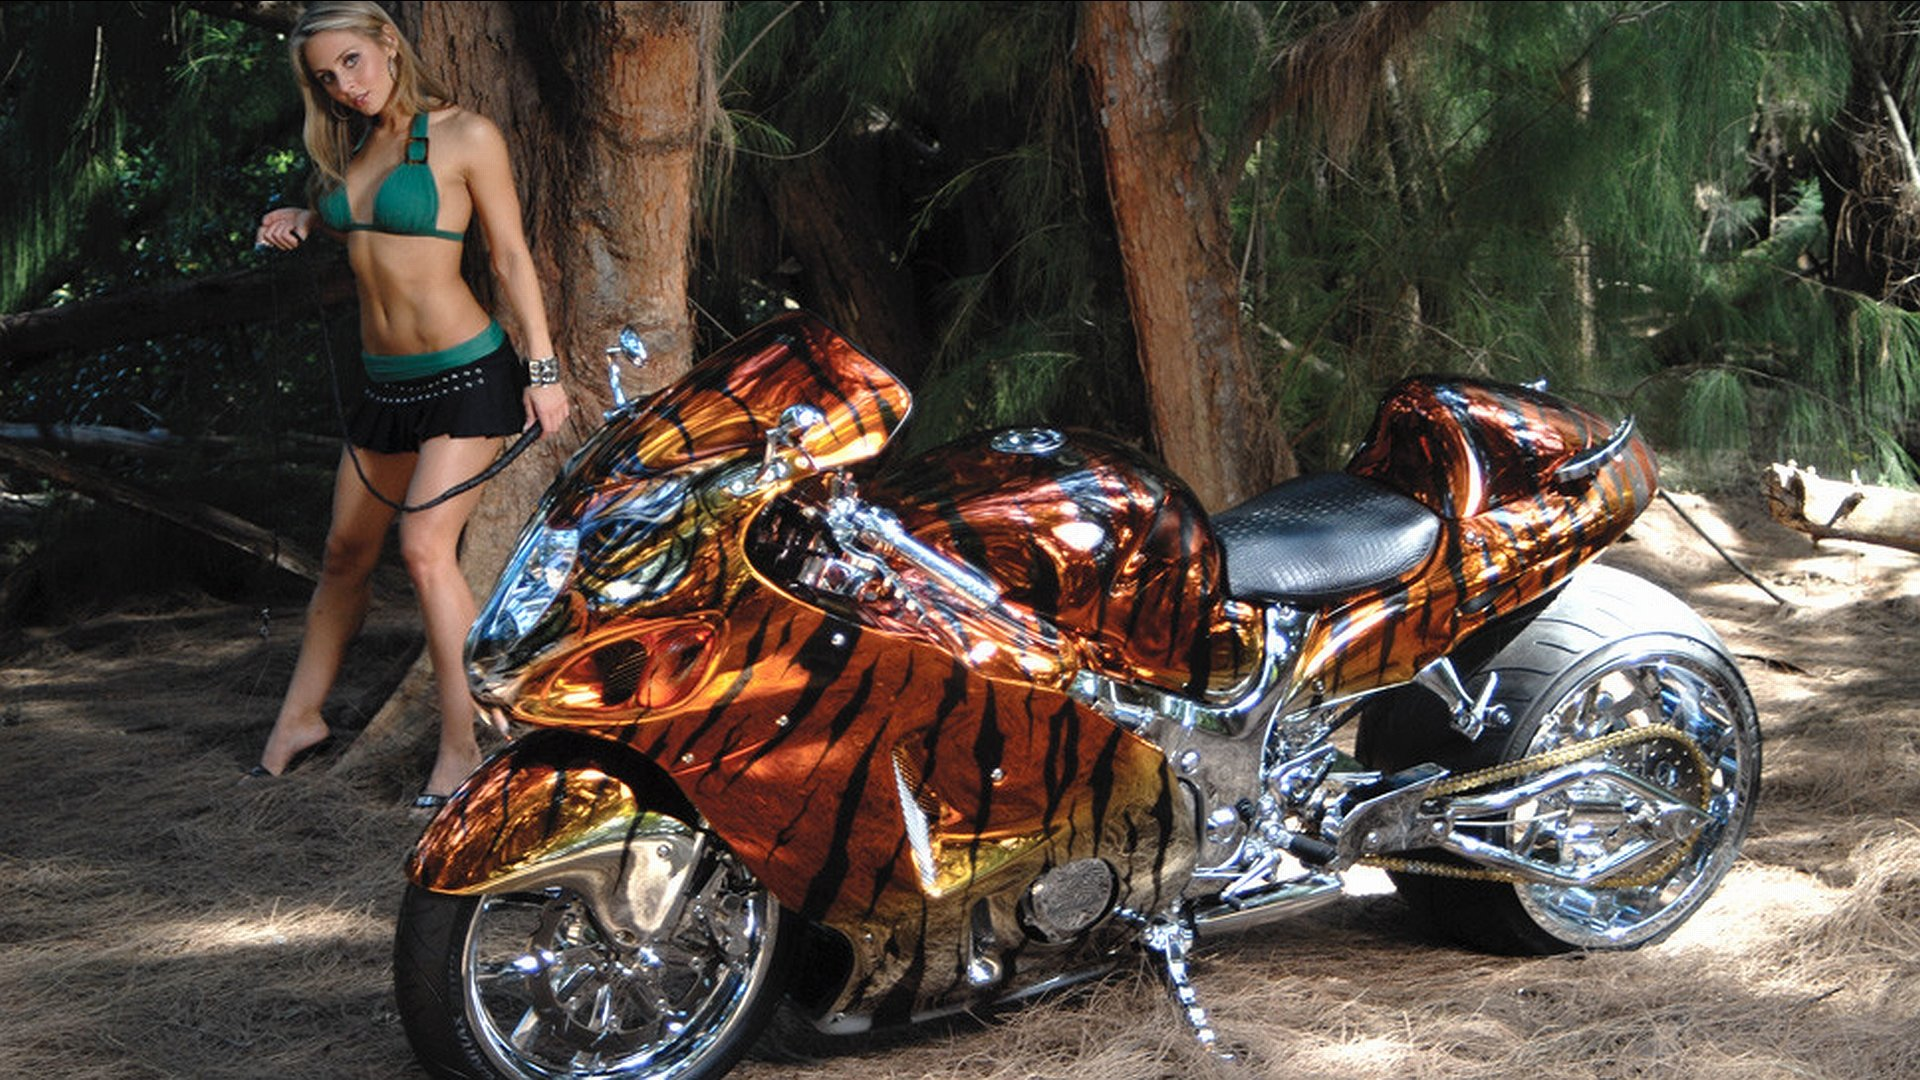 Download full hd 1080p Girls and Bike (Motorcycles) computer wallpaper ID:67063 for free